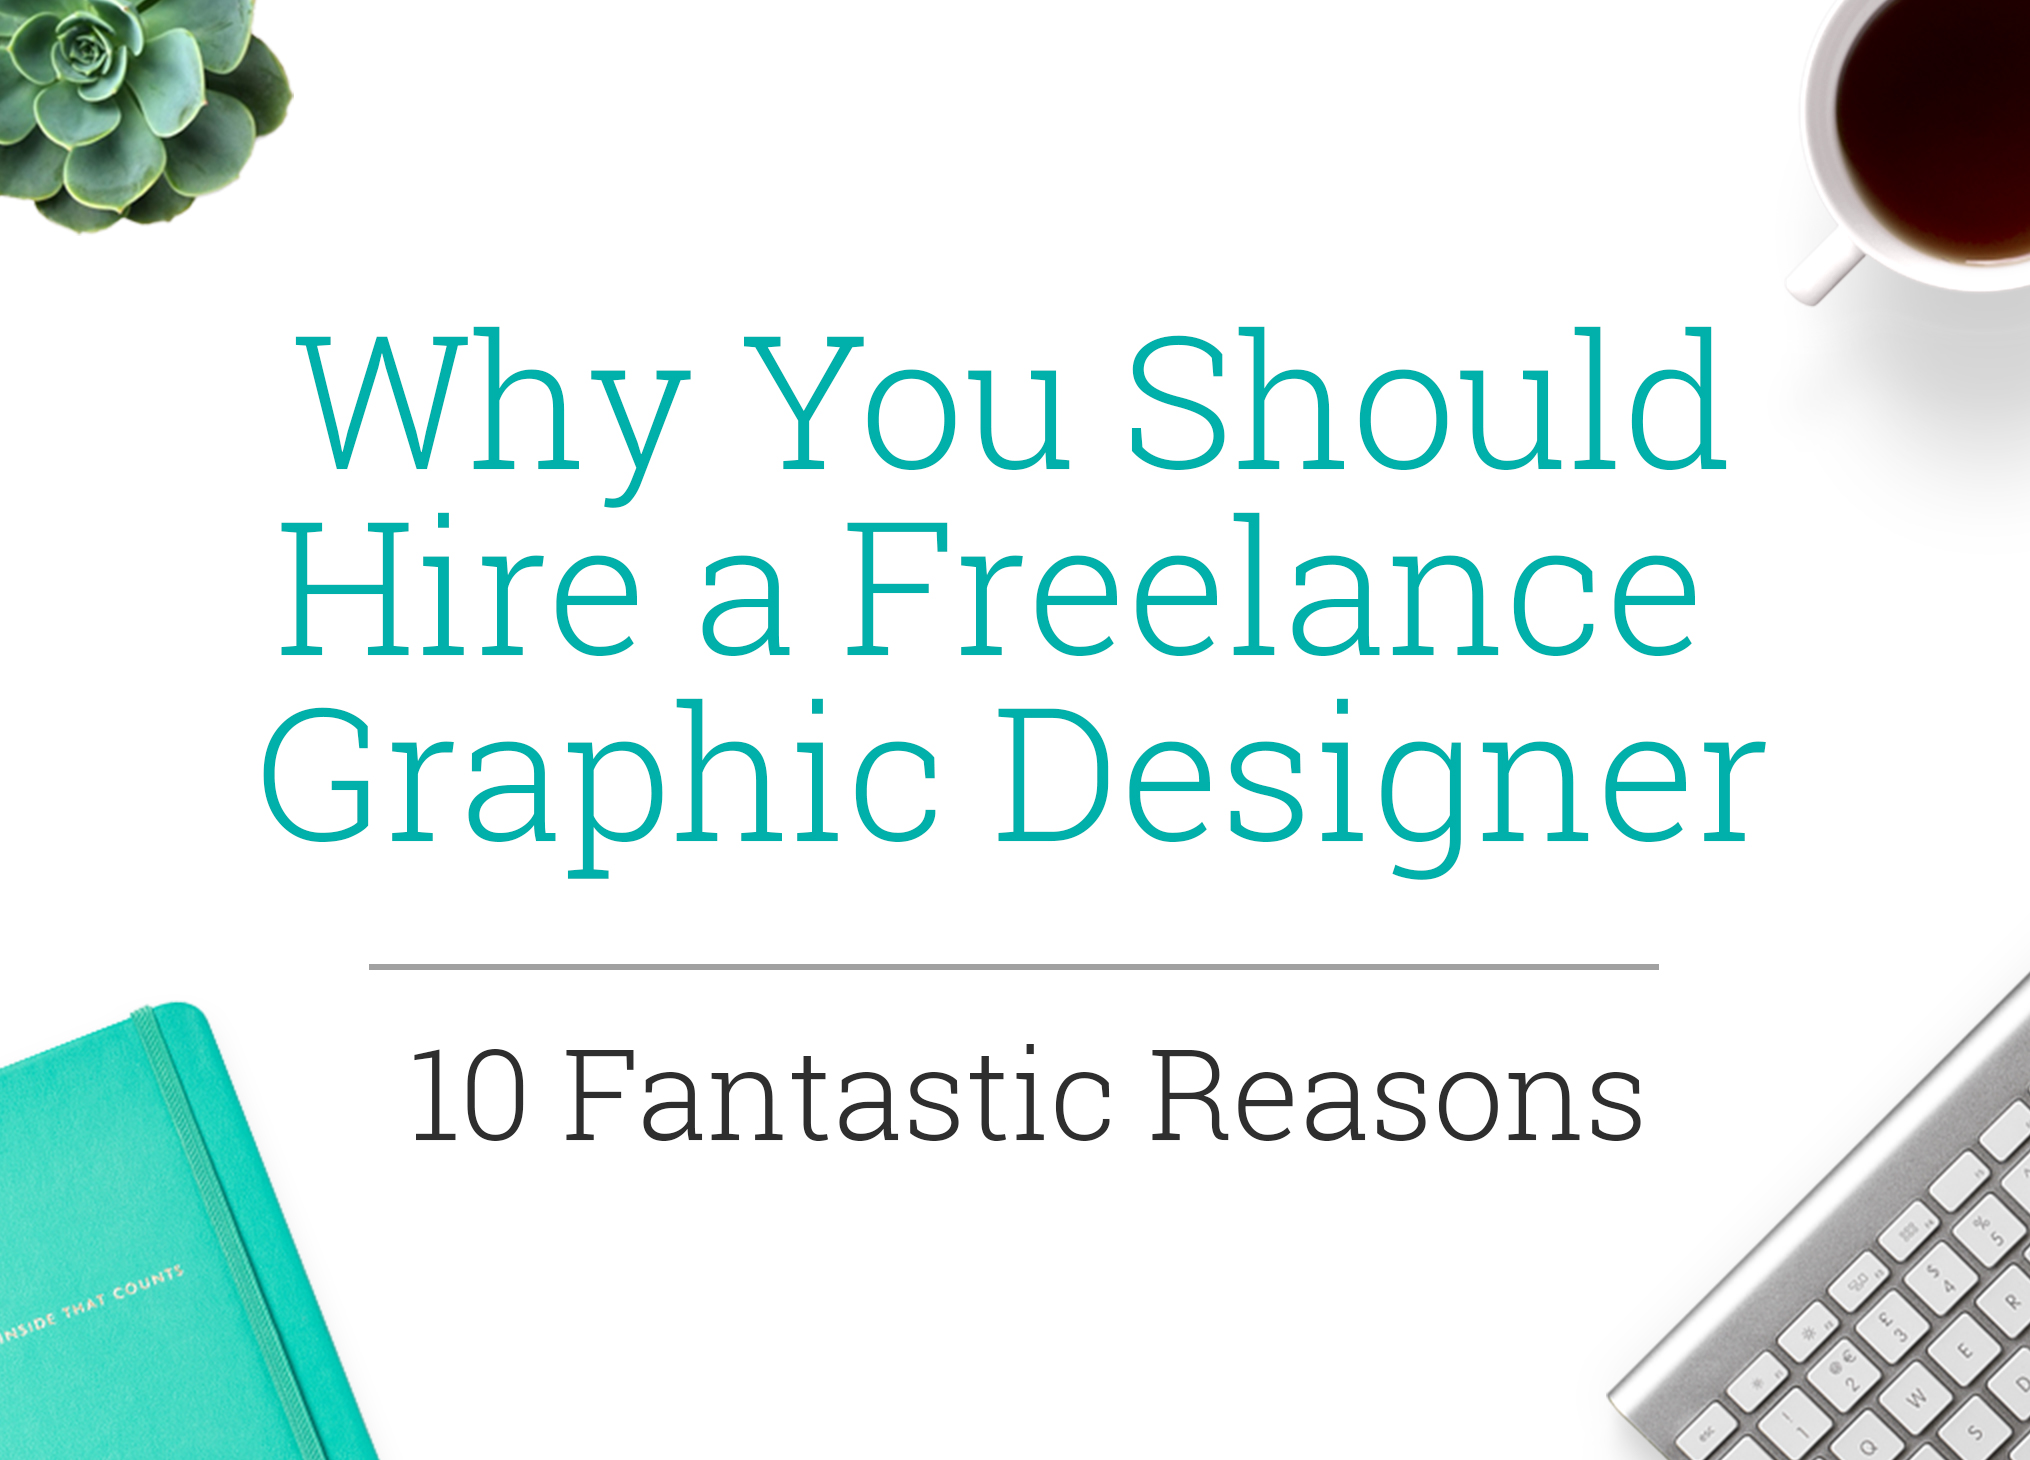 Why Hire a Freelance Graphic Designer